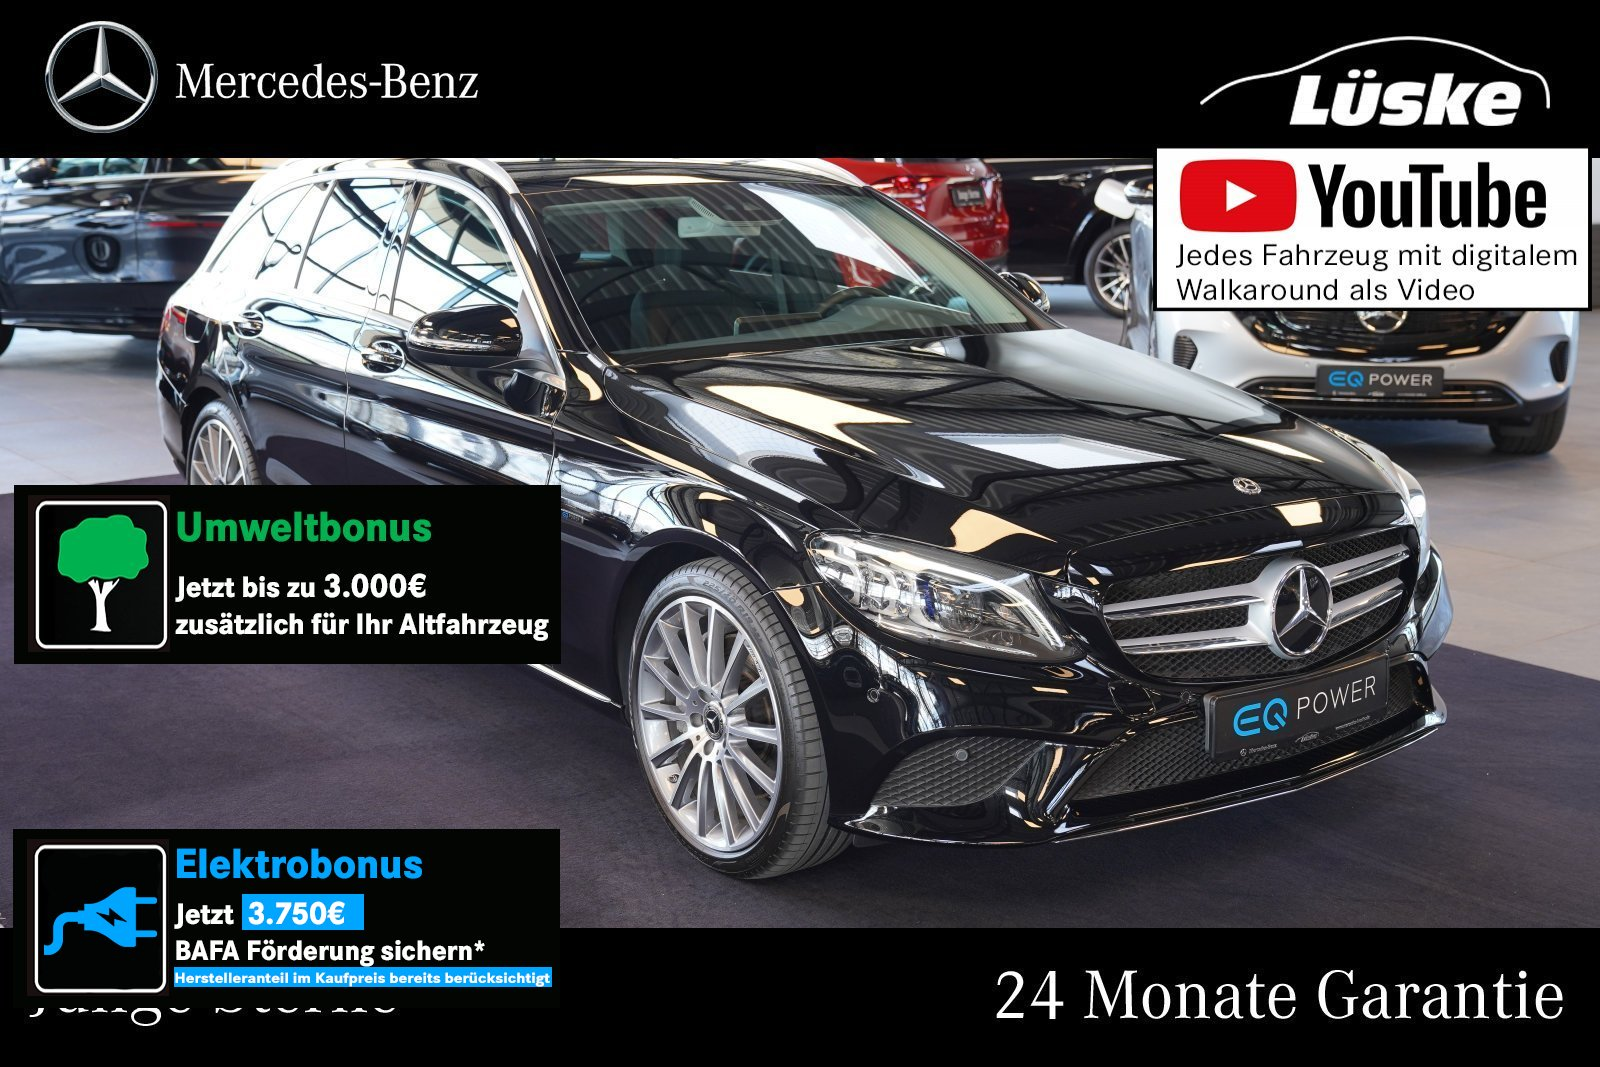 mercedes-benz c 300 e t avantgarde amg air body kamera multibe, jahr 2020, hybrid